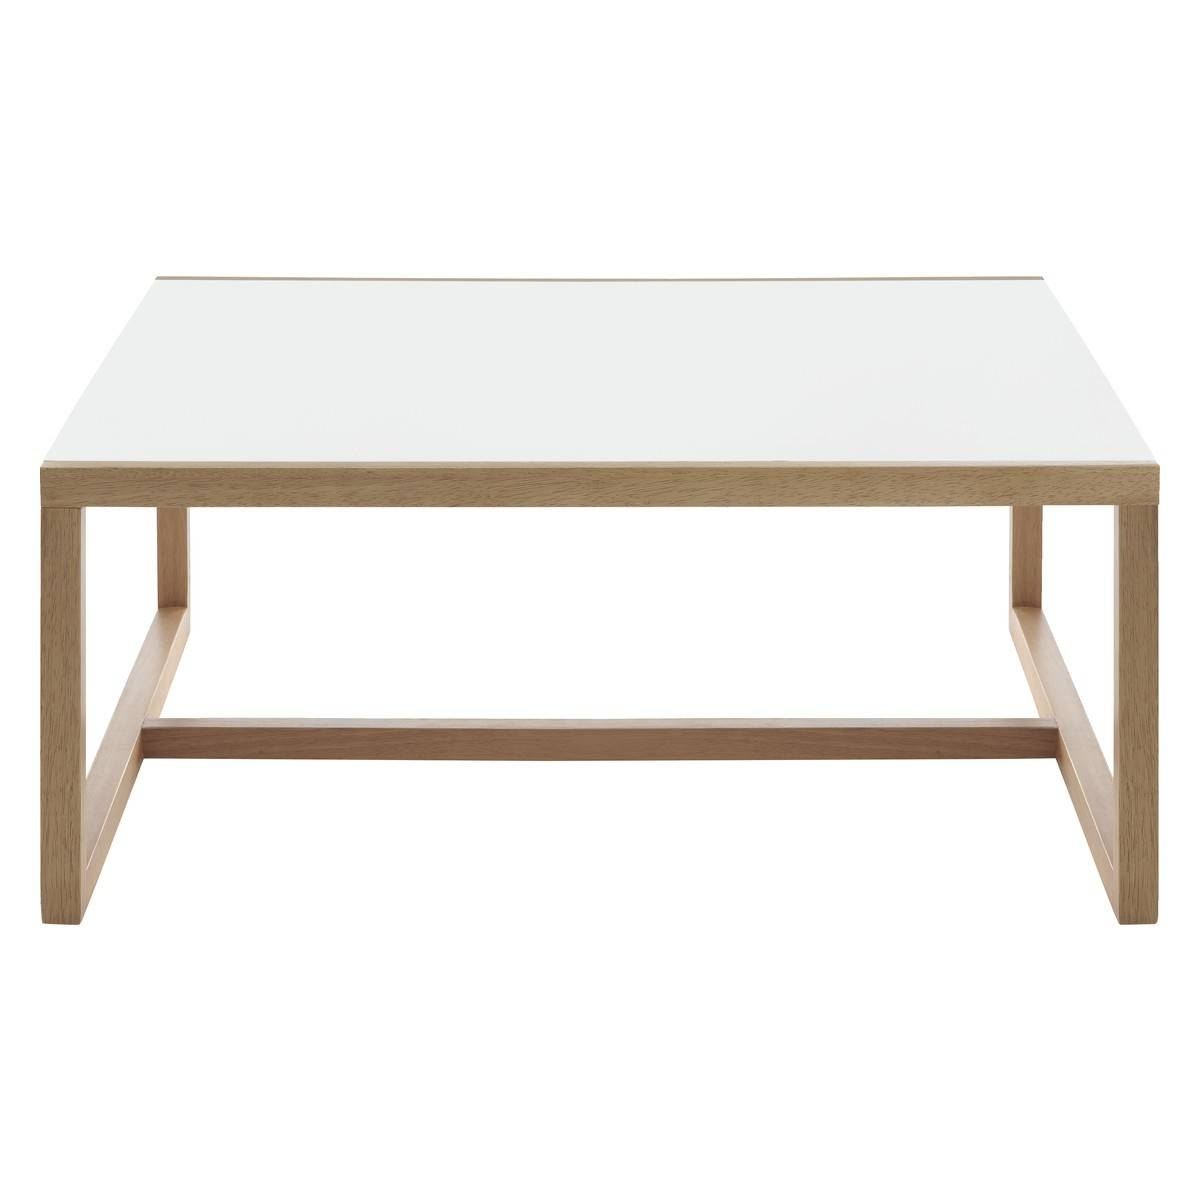 Coffee Table: Enchanting White Square Coffee Table Designs White Intended For White Coffee Tables With Storage (View 24 of 30)